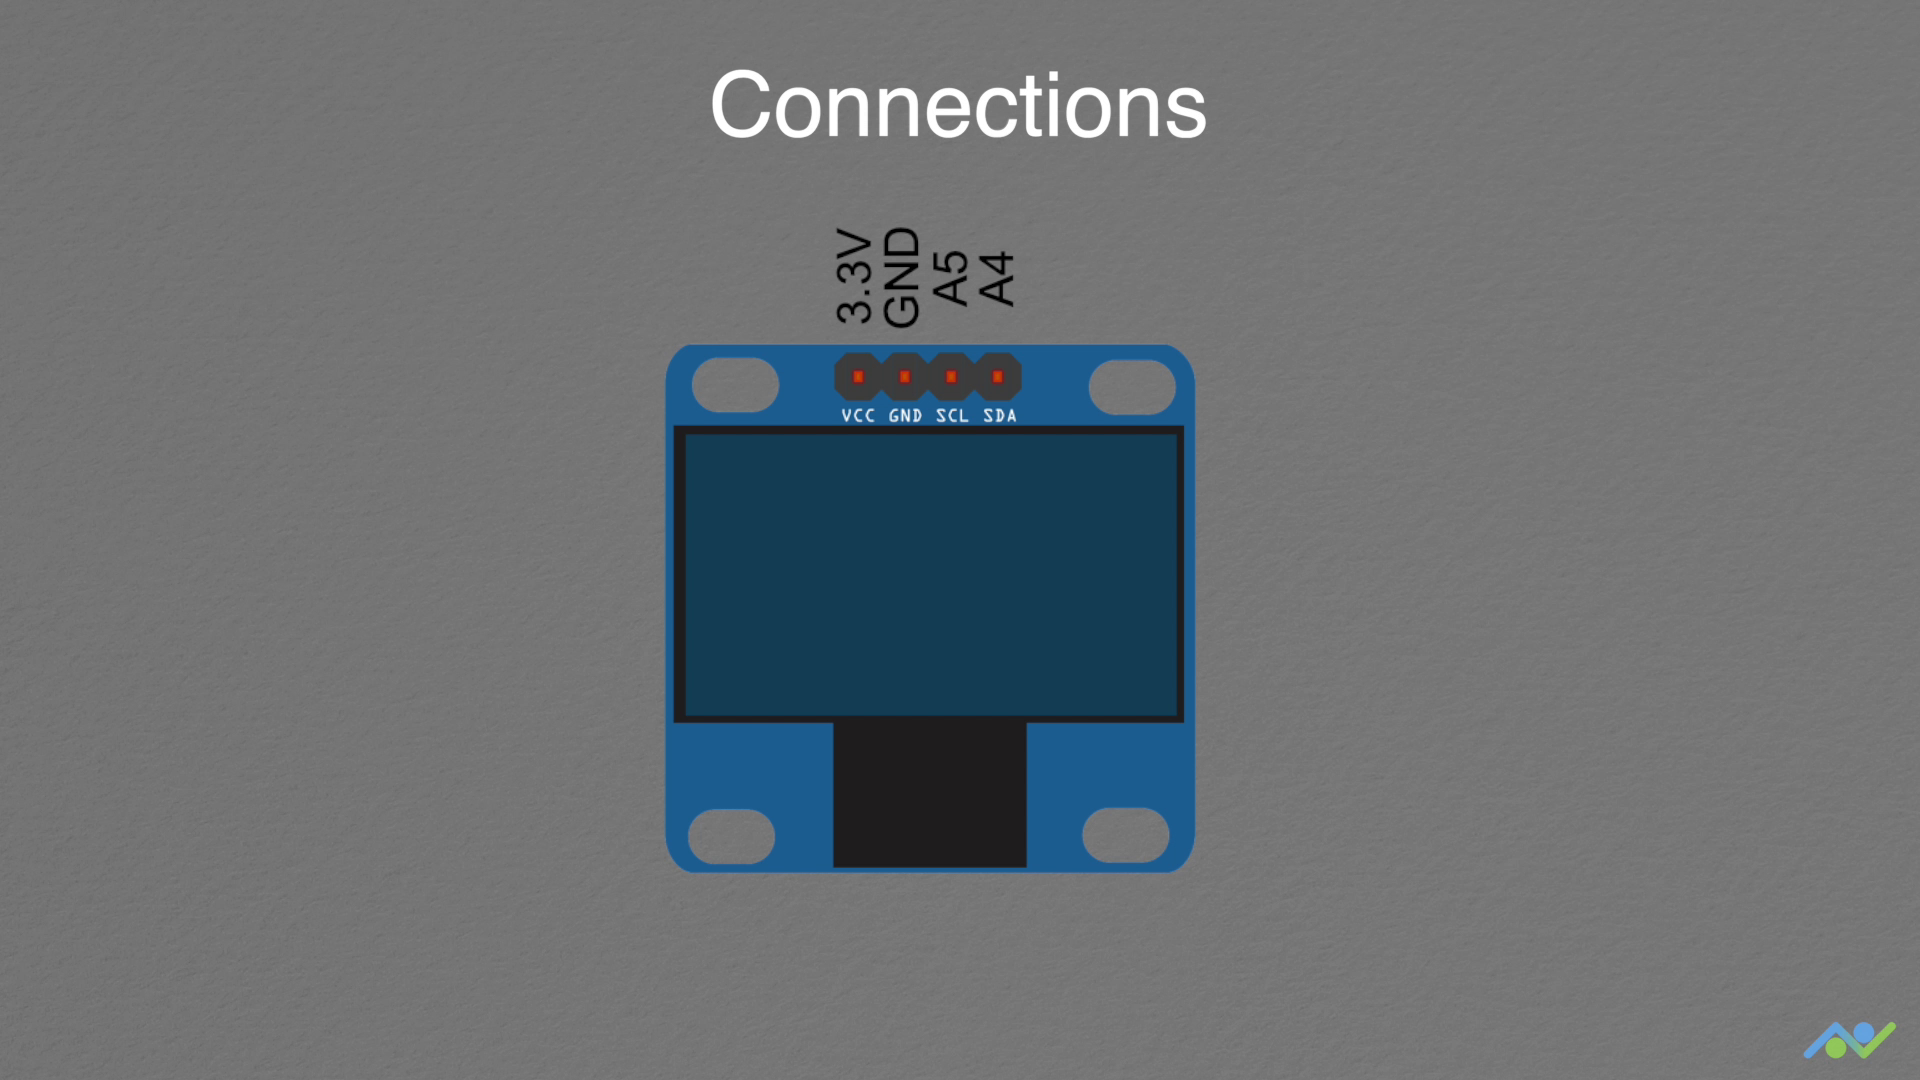 Oled pin connections nlcgbbmhw2